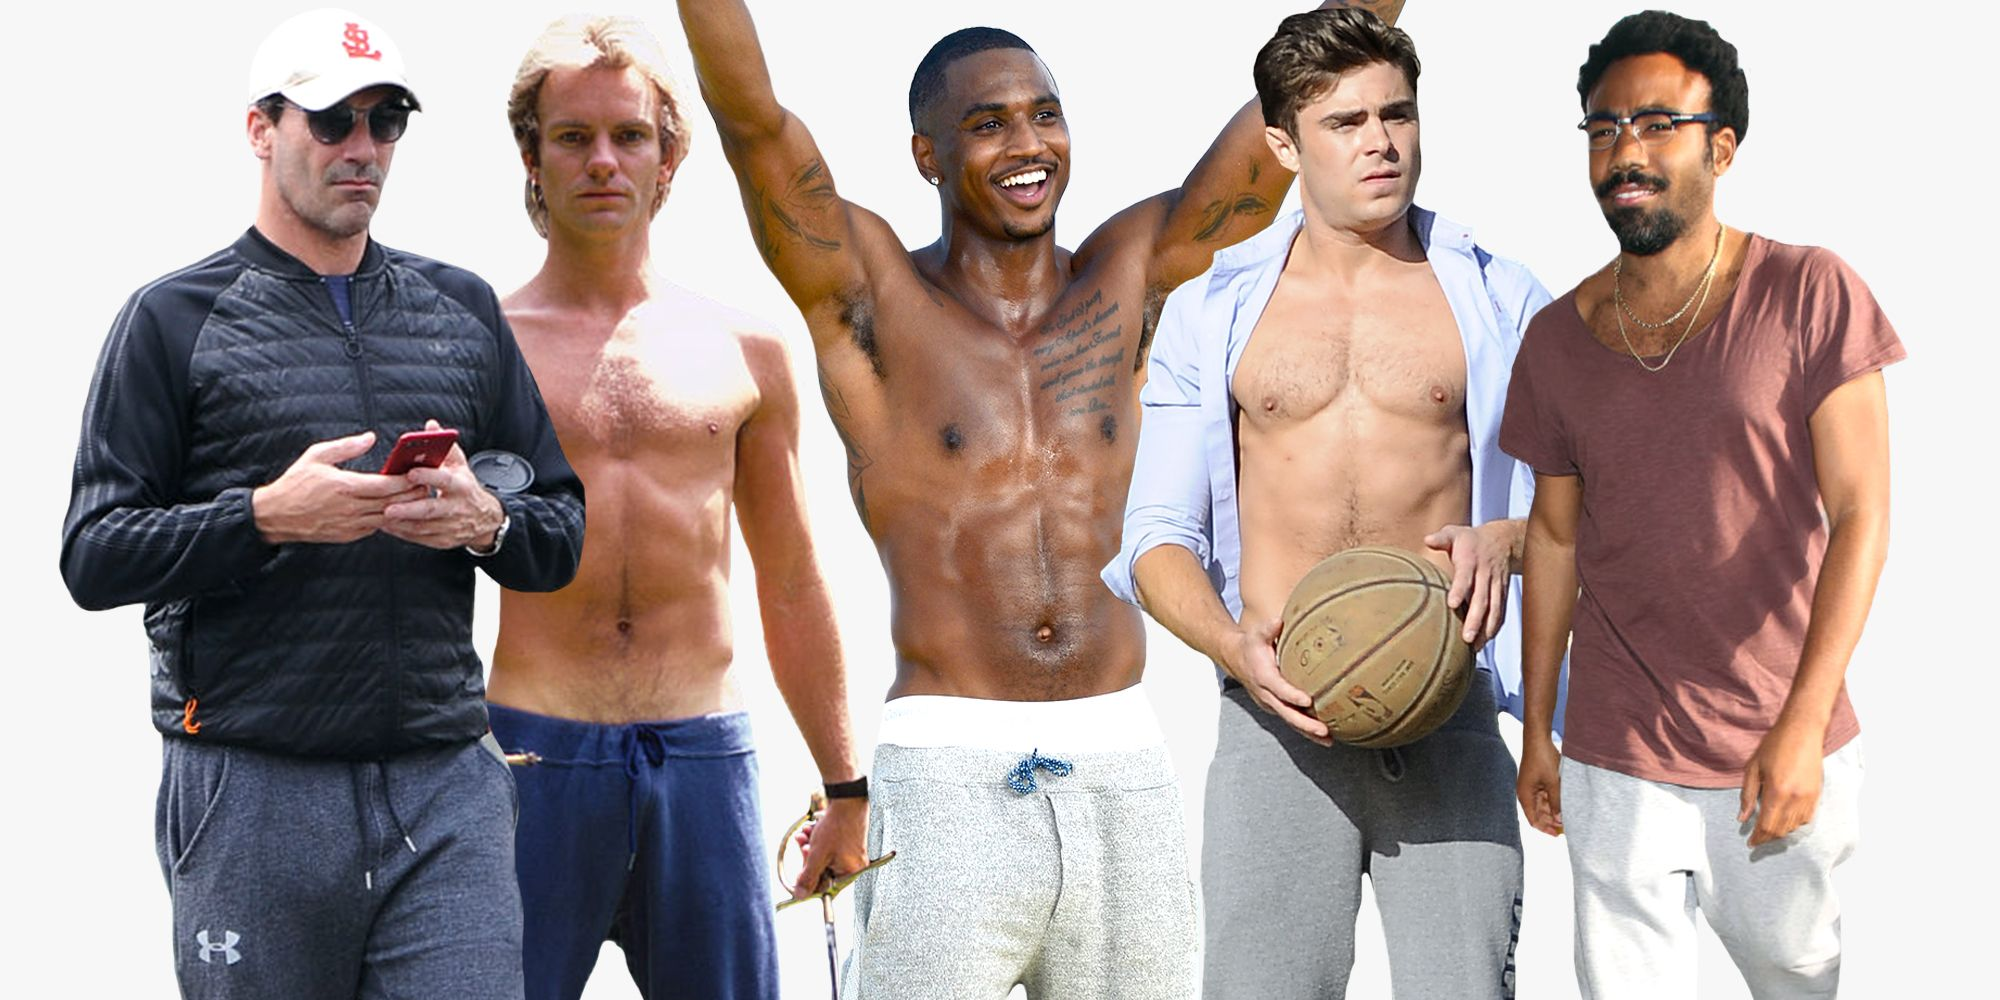 Just a Bunch of Hot Guys in Sweatpants to Warm You Up 59ec076e6